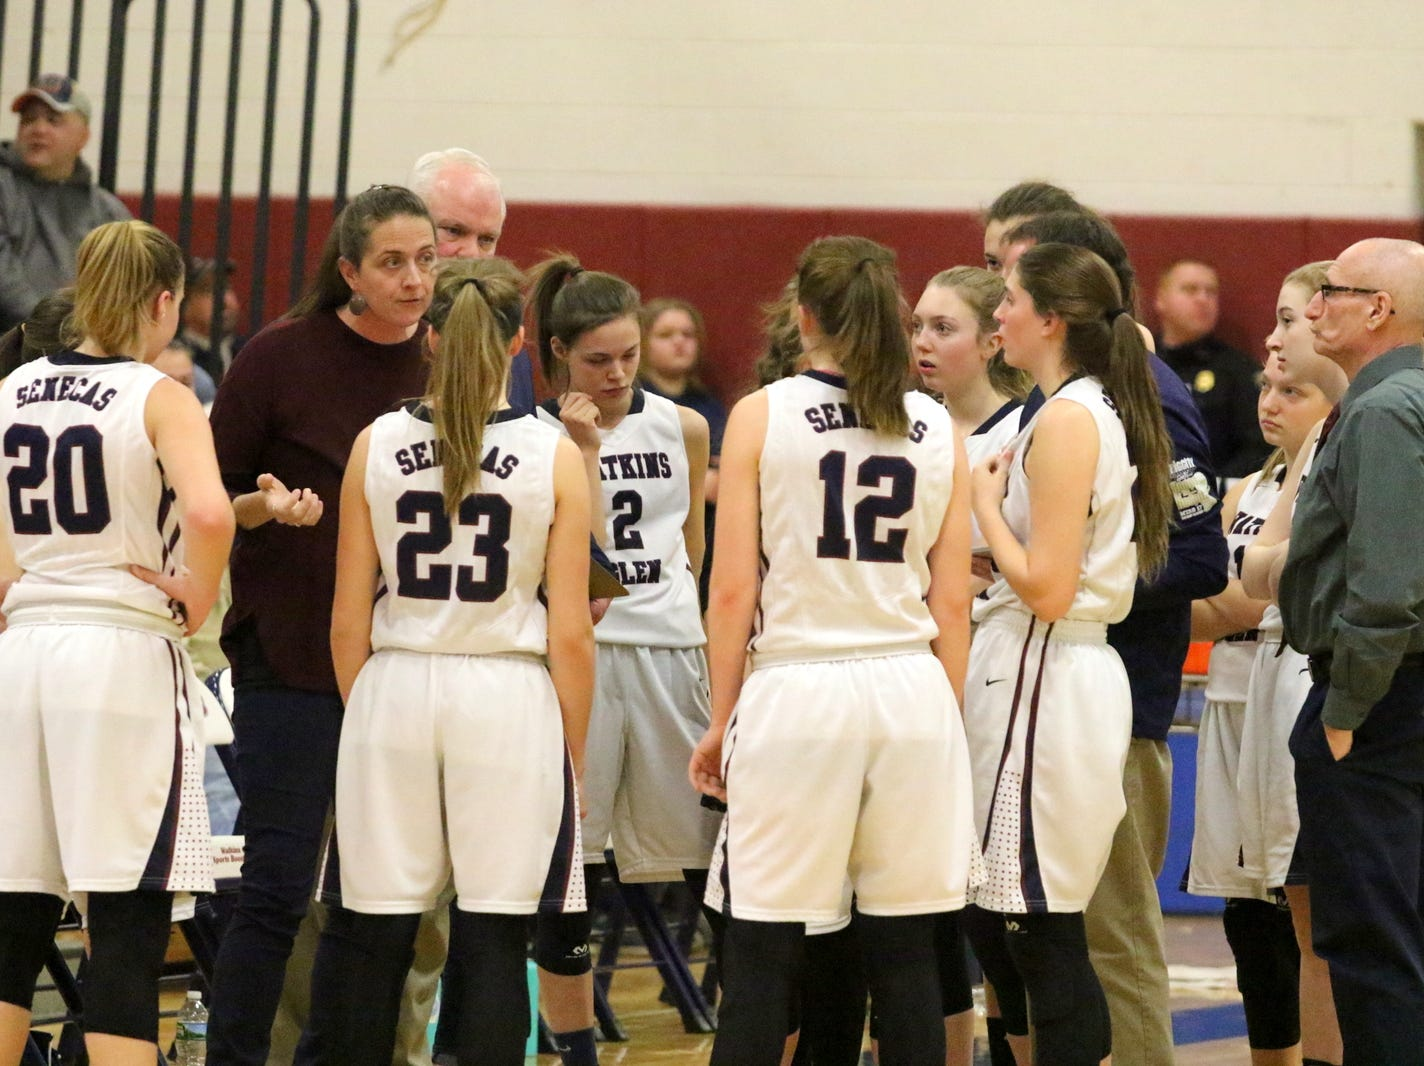 Watkins Glen Lady Senecas headed to NYSPHSAA Final Four